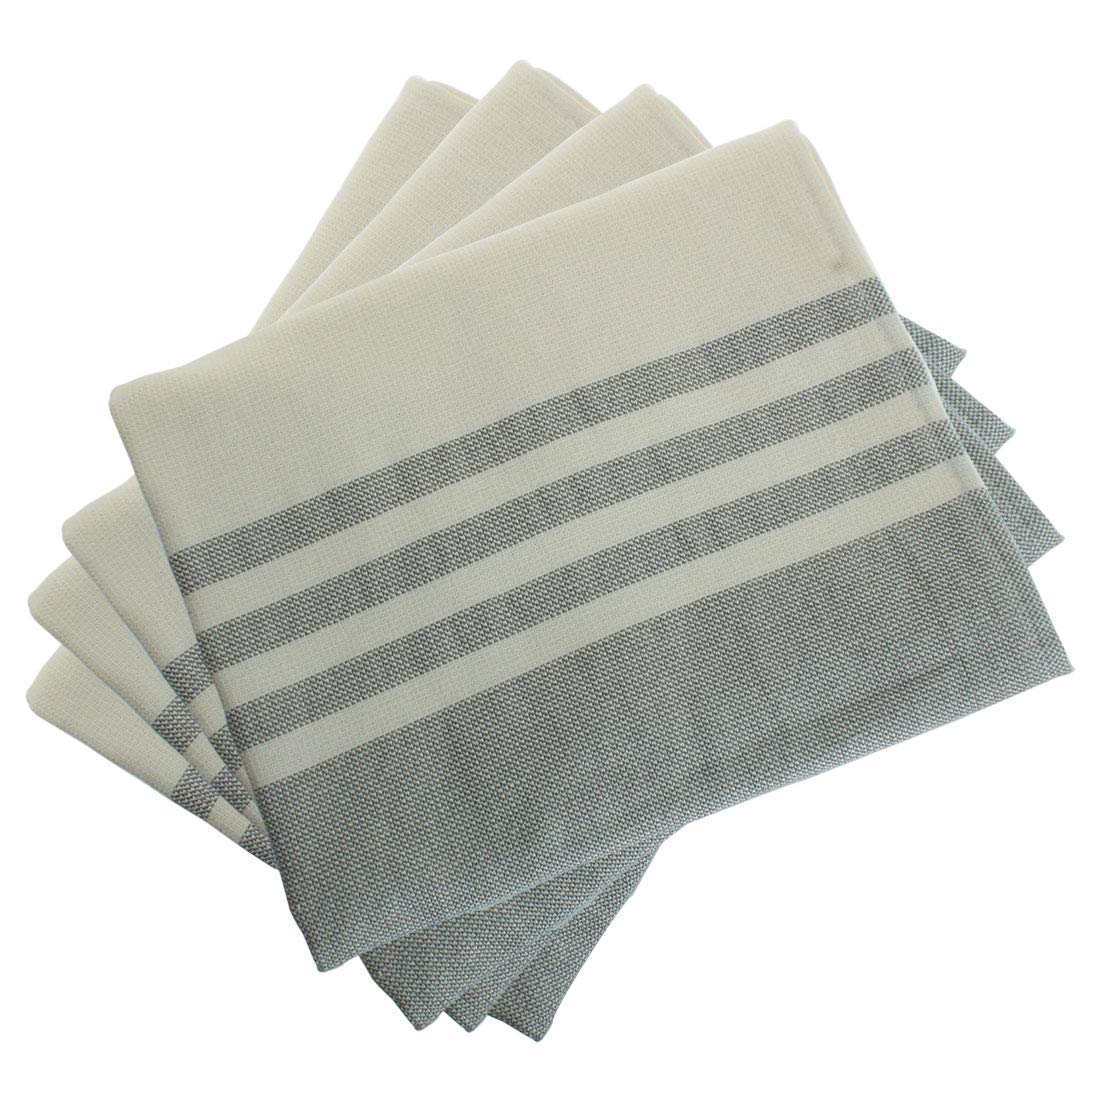 uxcell 4 Pack Cotton Dish Towels 26'' x 16'', Machine Washable Highly Absorbent Kitchen Dishcloths, Napkins and Tea Towels Gray